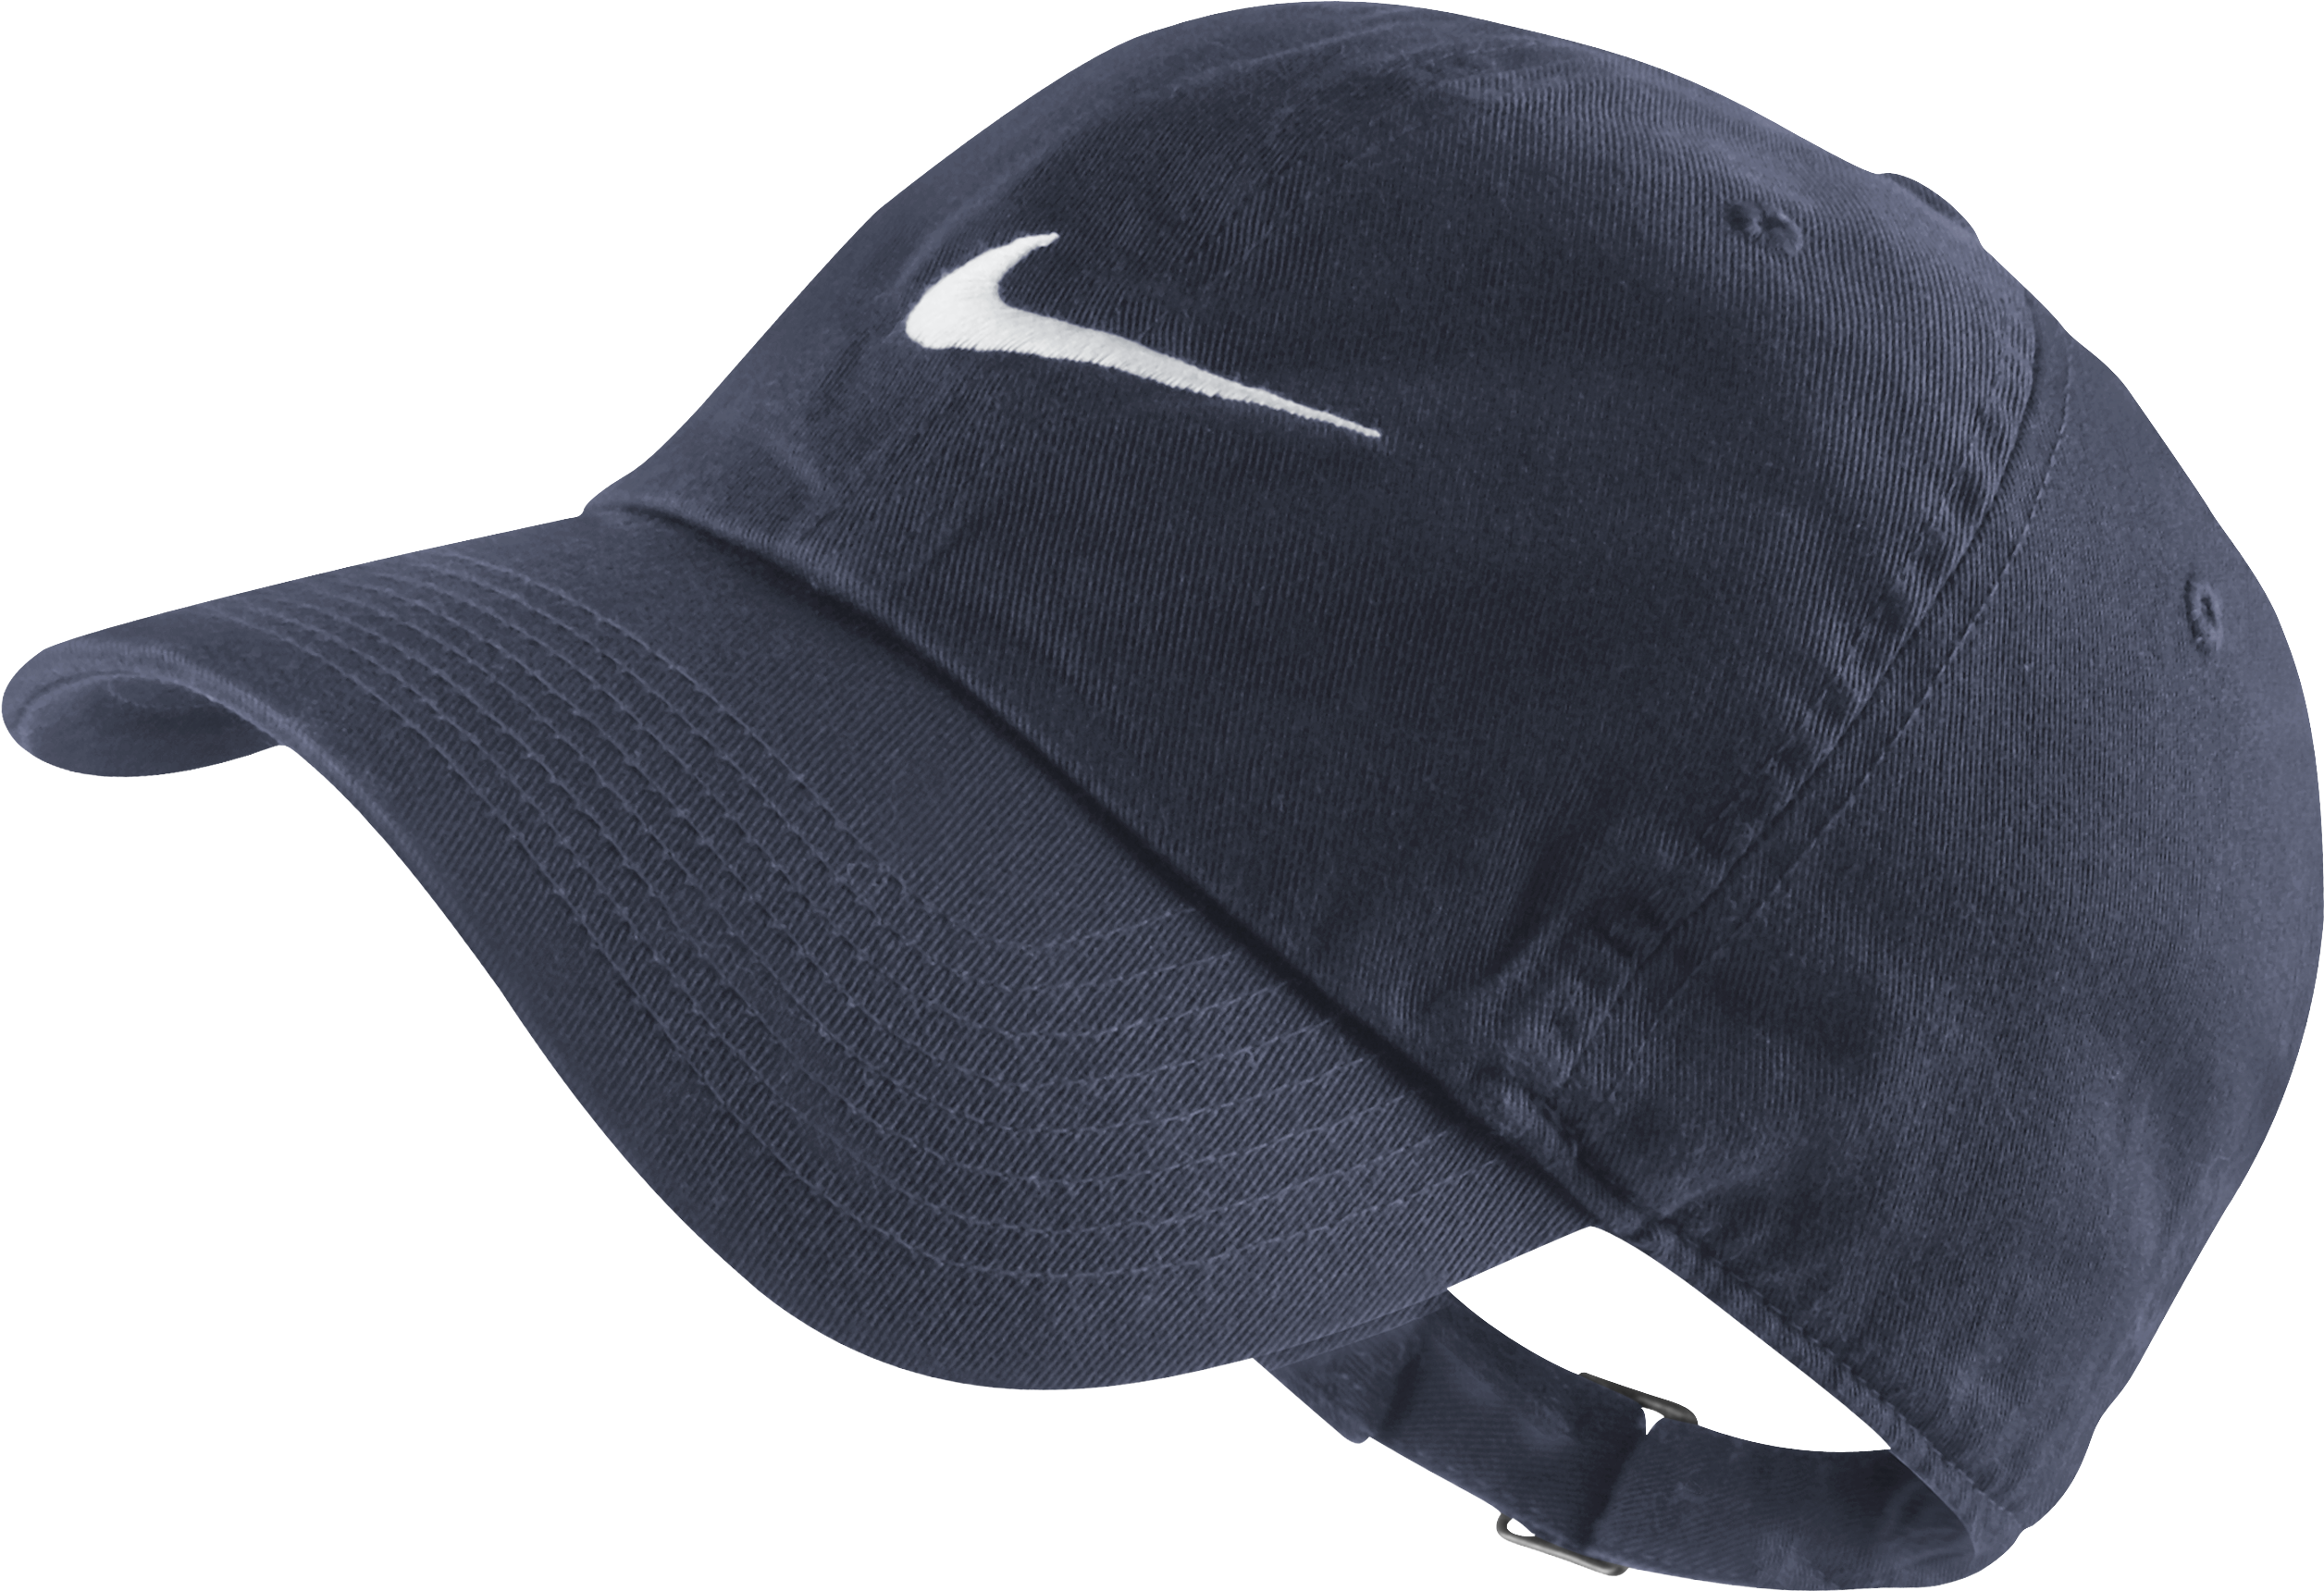 Nike Swoosh Png Clipart - Large Size Png Image - PikPng